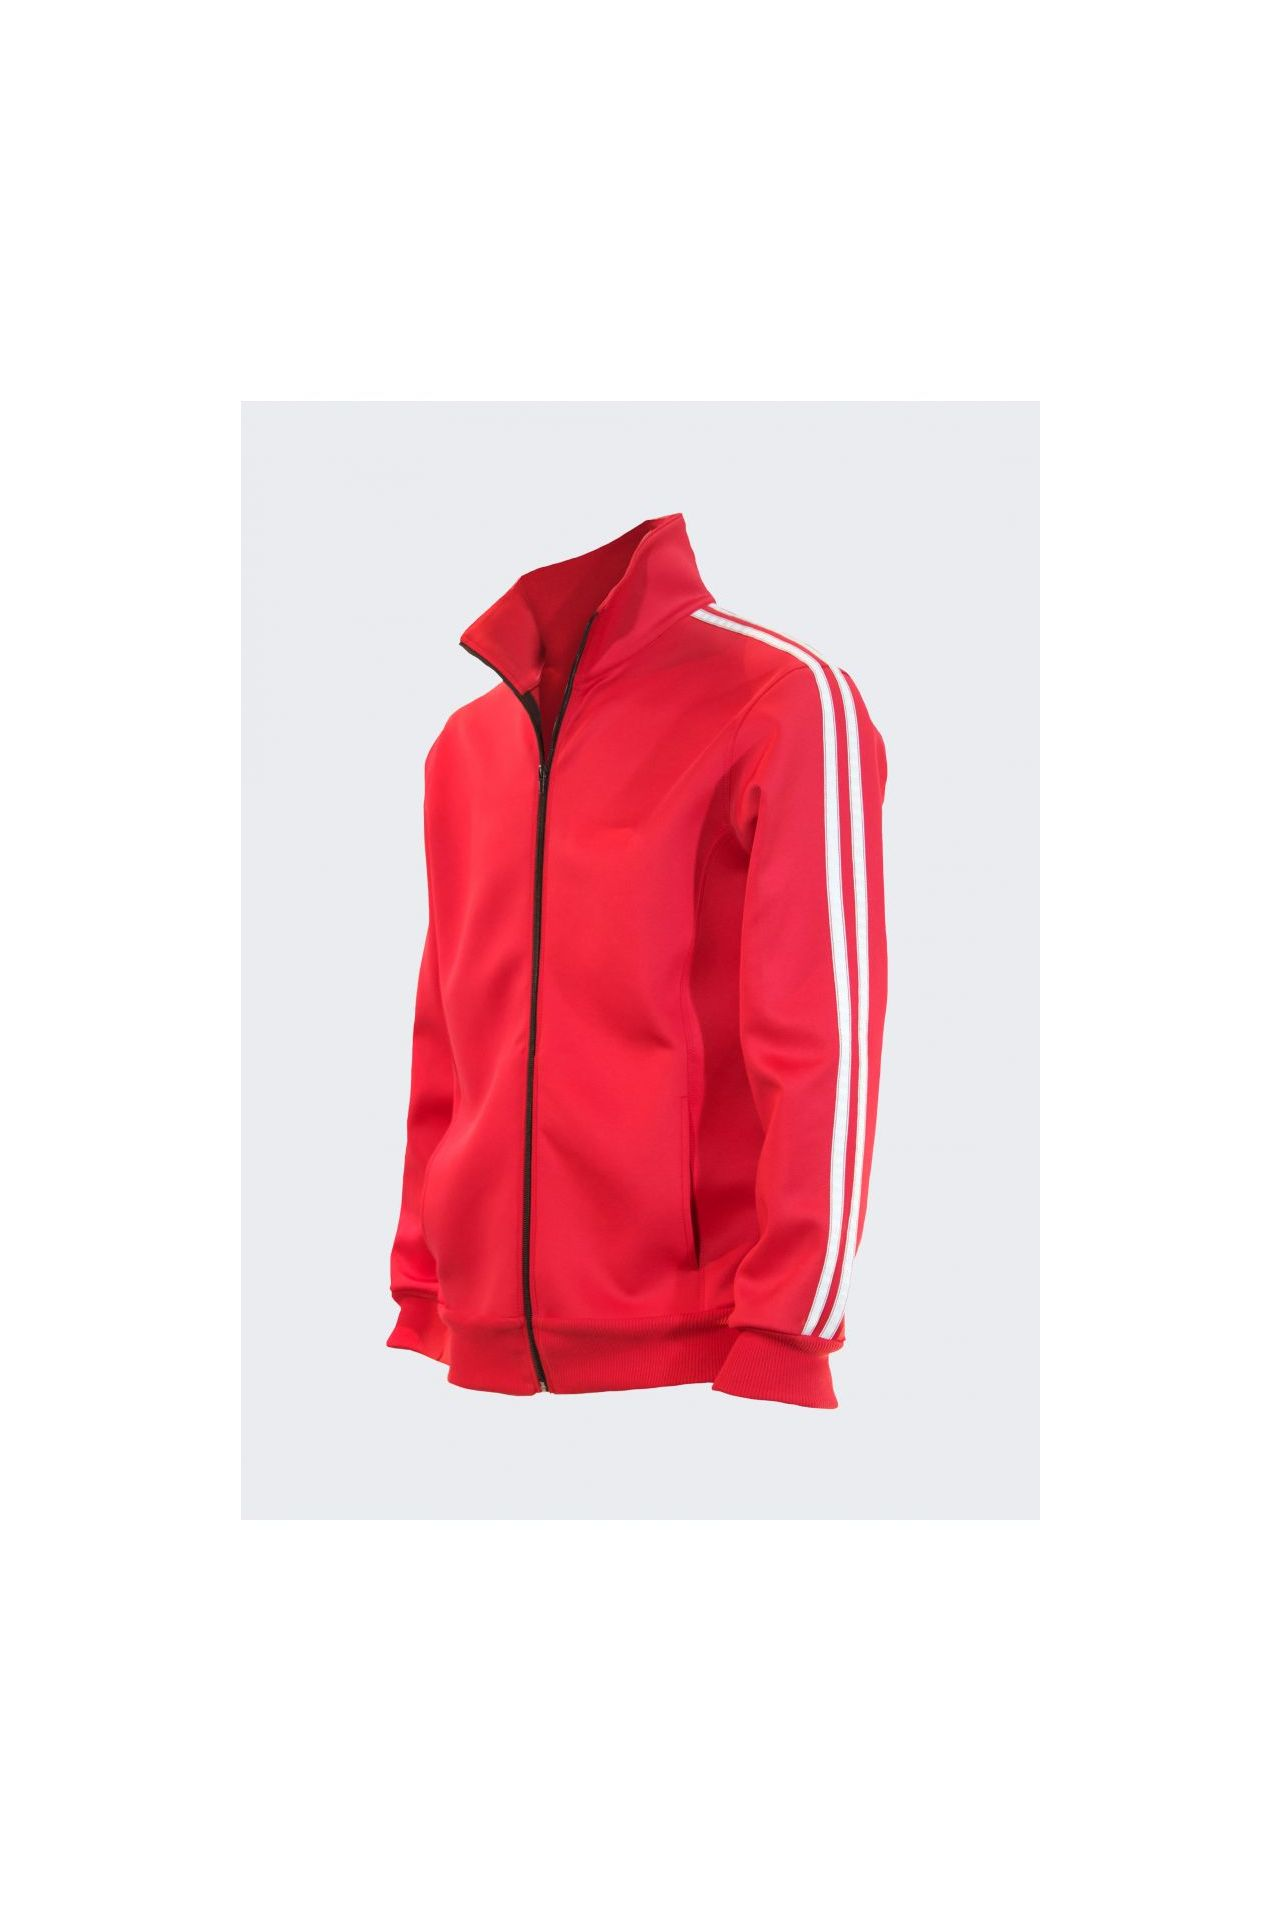 TRACK JACKET IN RED WITH WHITE STRIPE